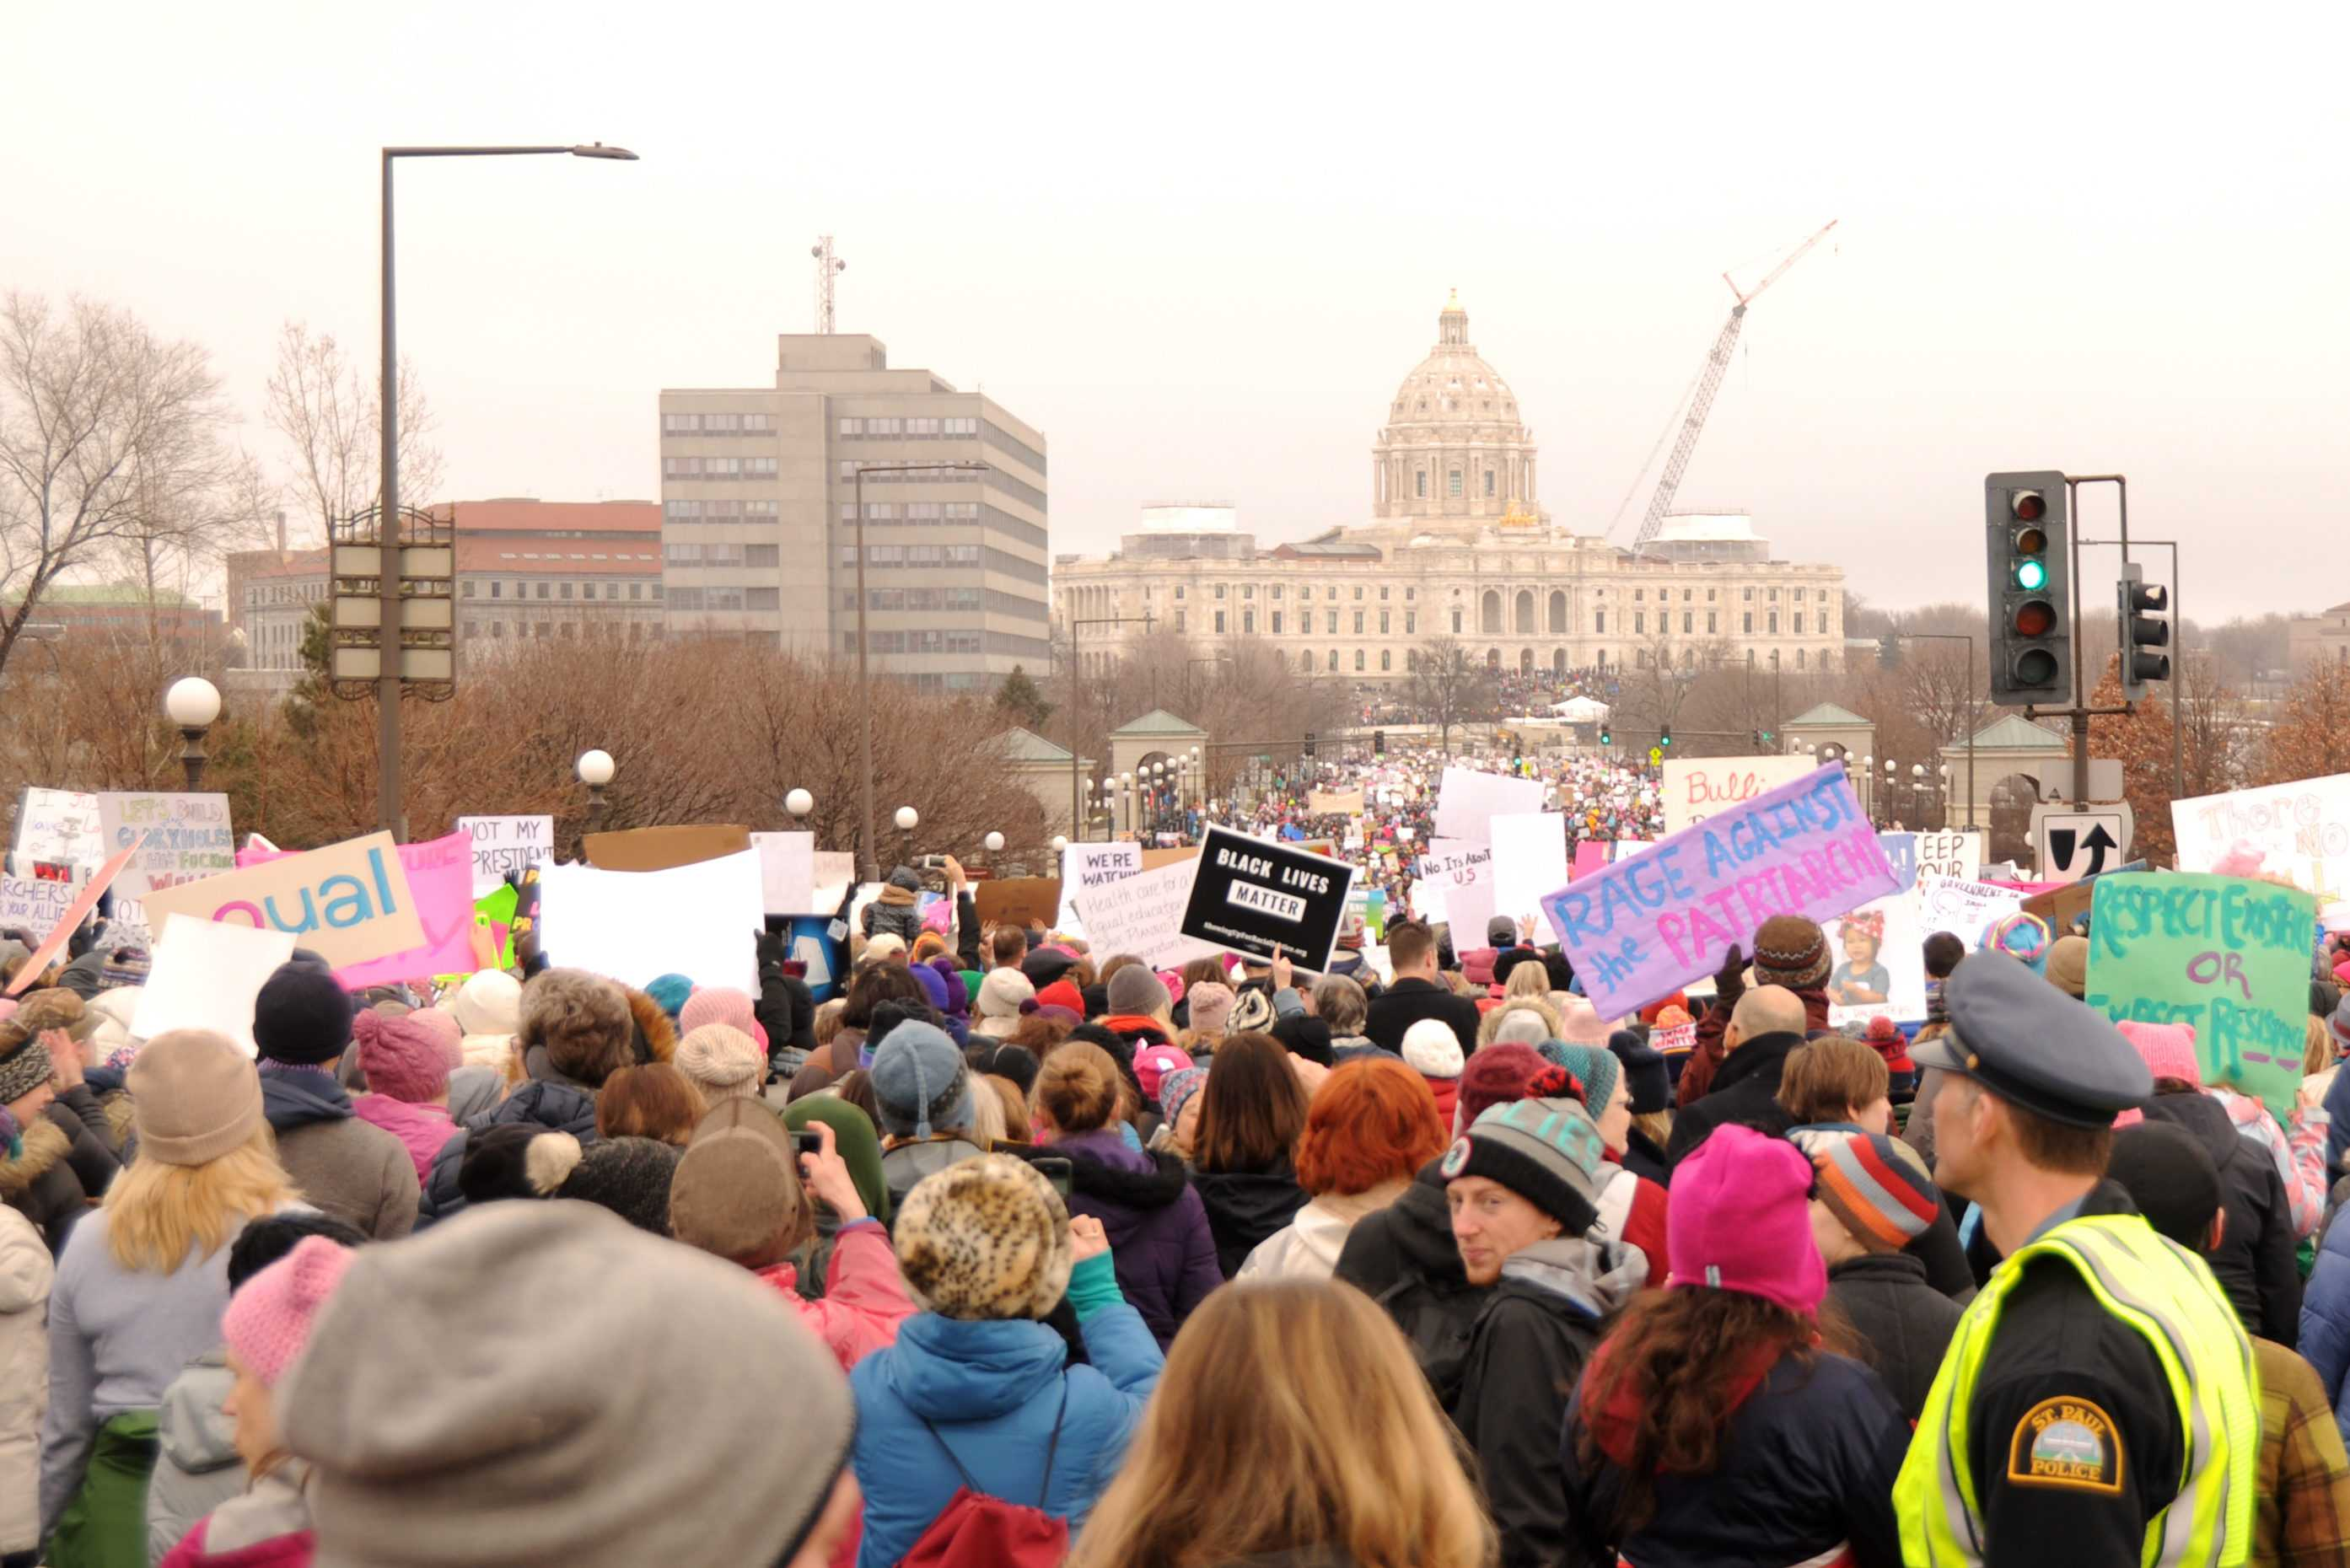 Between 90,000 and 100,000 people converged on the St. Paul Capitol building on Saturday, Jan. 21 for the Minnesota Women's March.  Photo by Maya Rait '18.